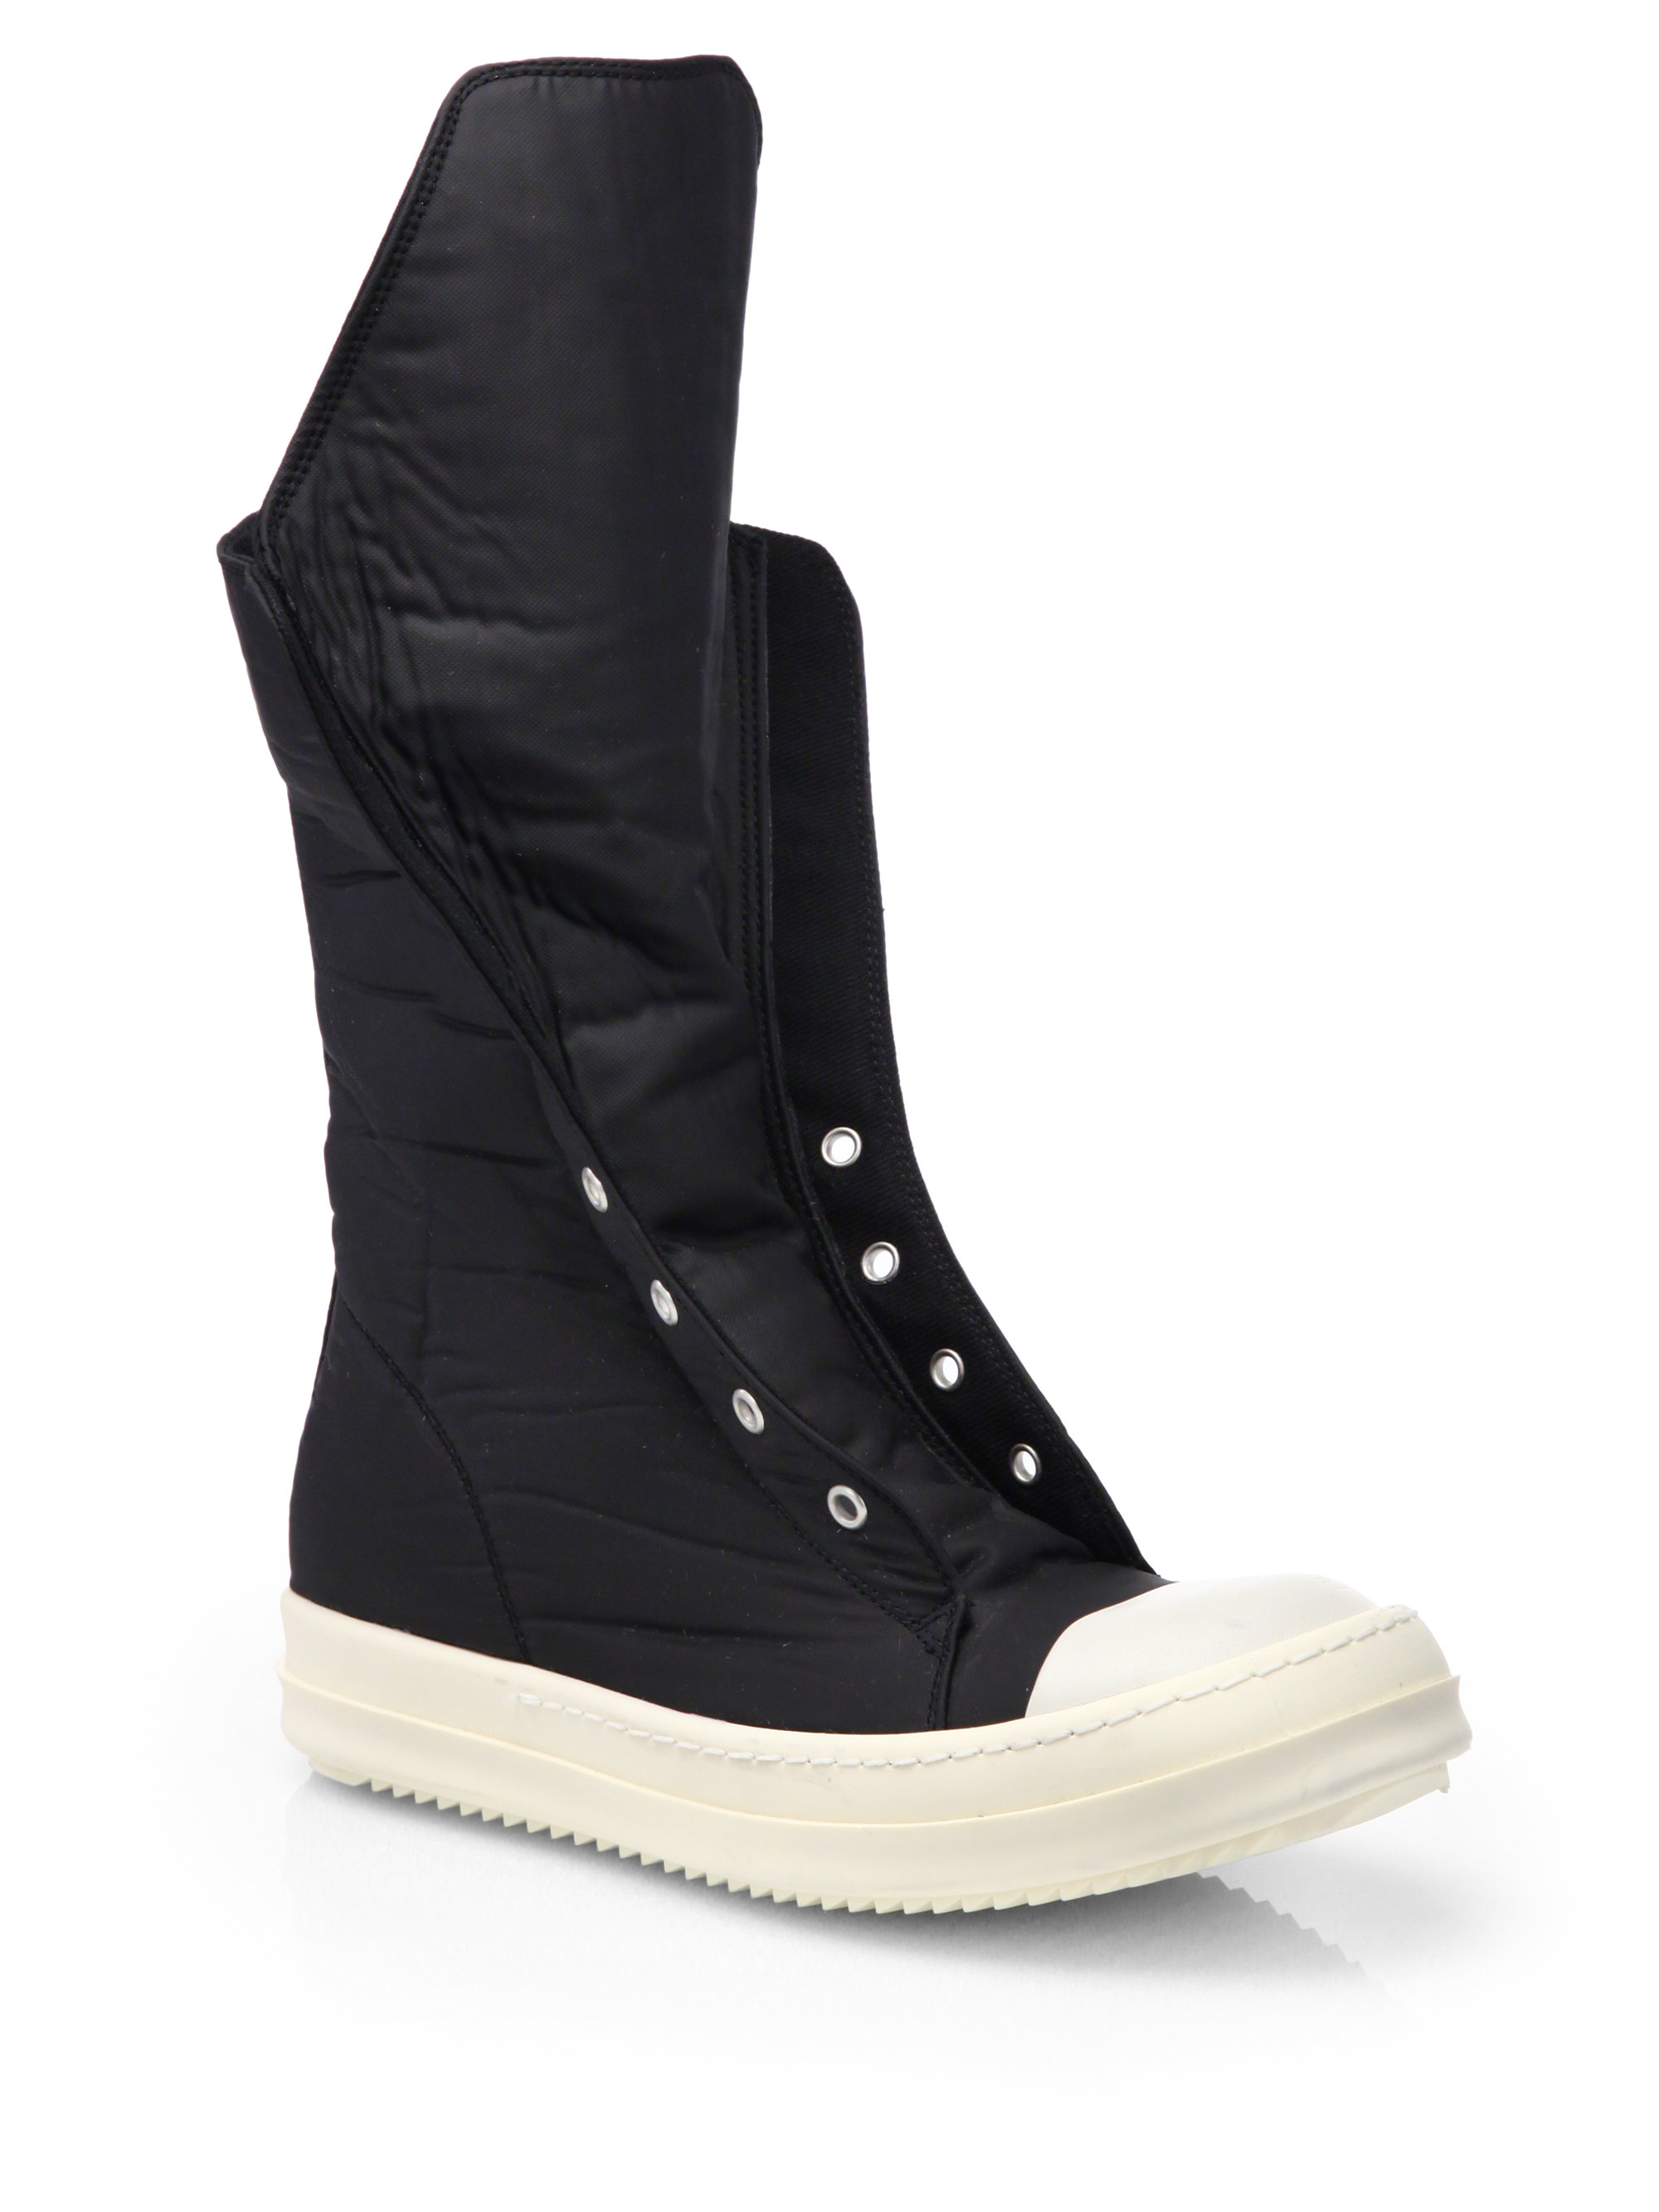 Drkshdw By Rick Owens Ramones Hightop Sneaker Boots in ...